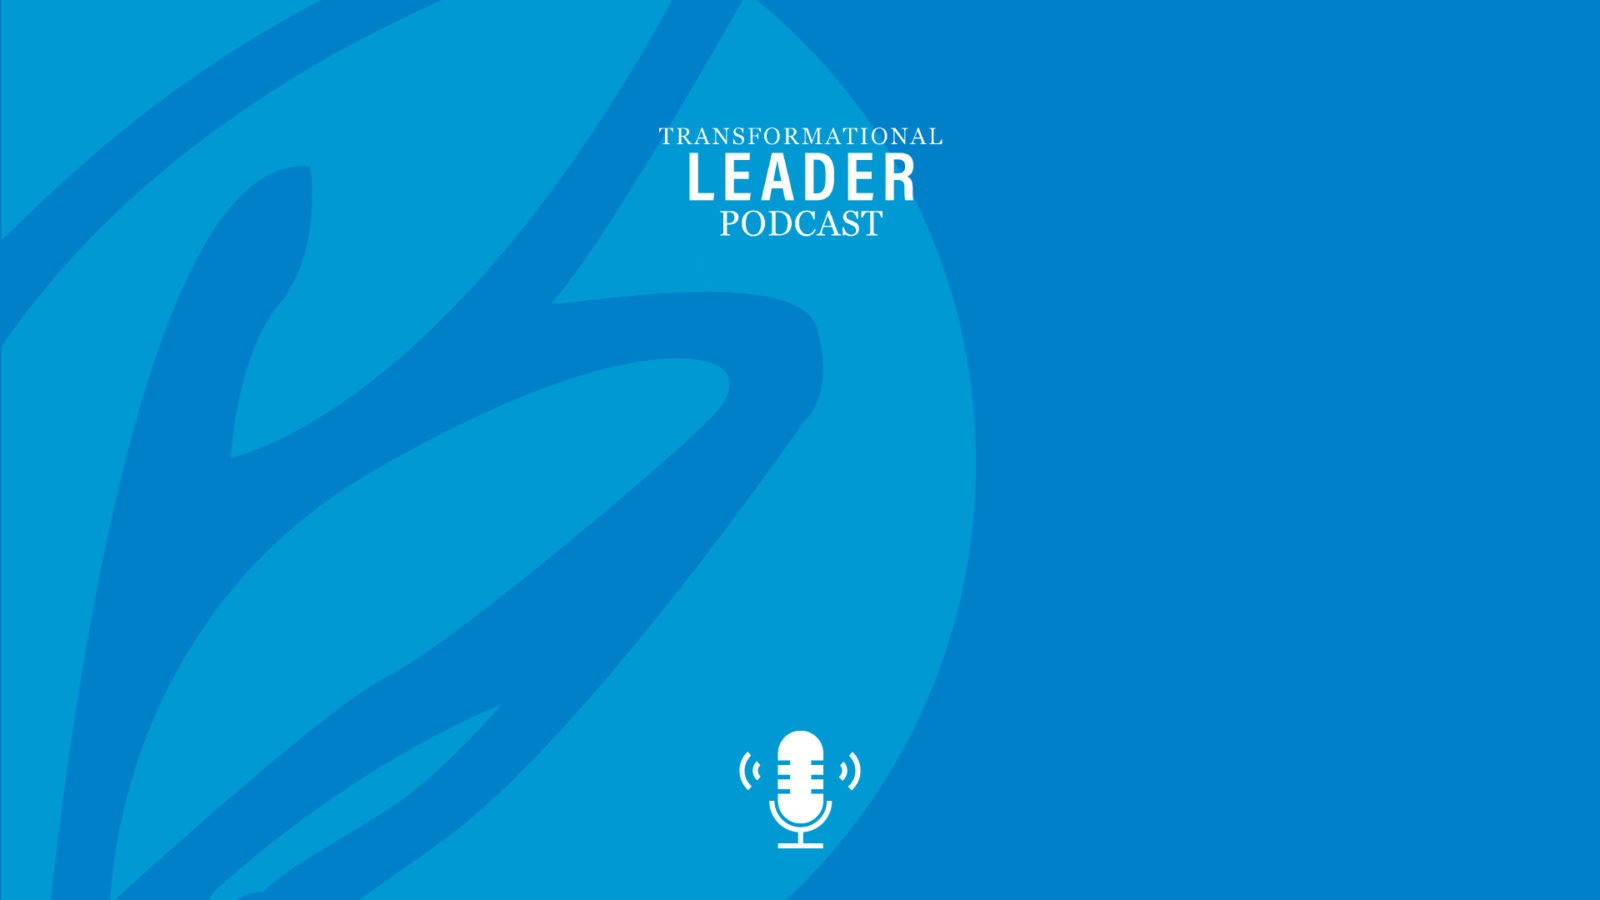 Transformational Leader Podcast